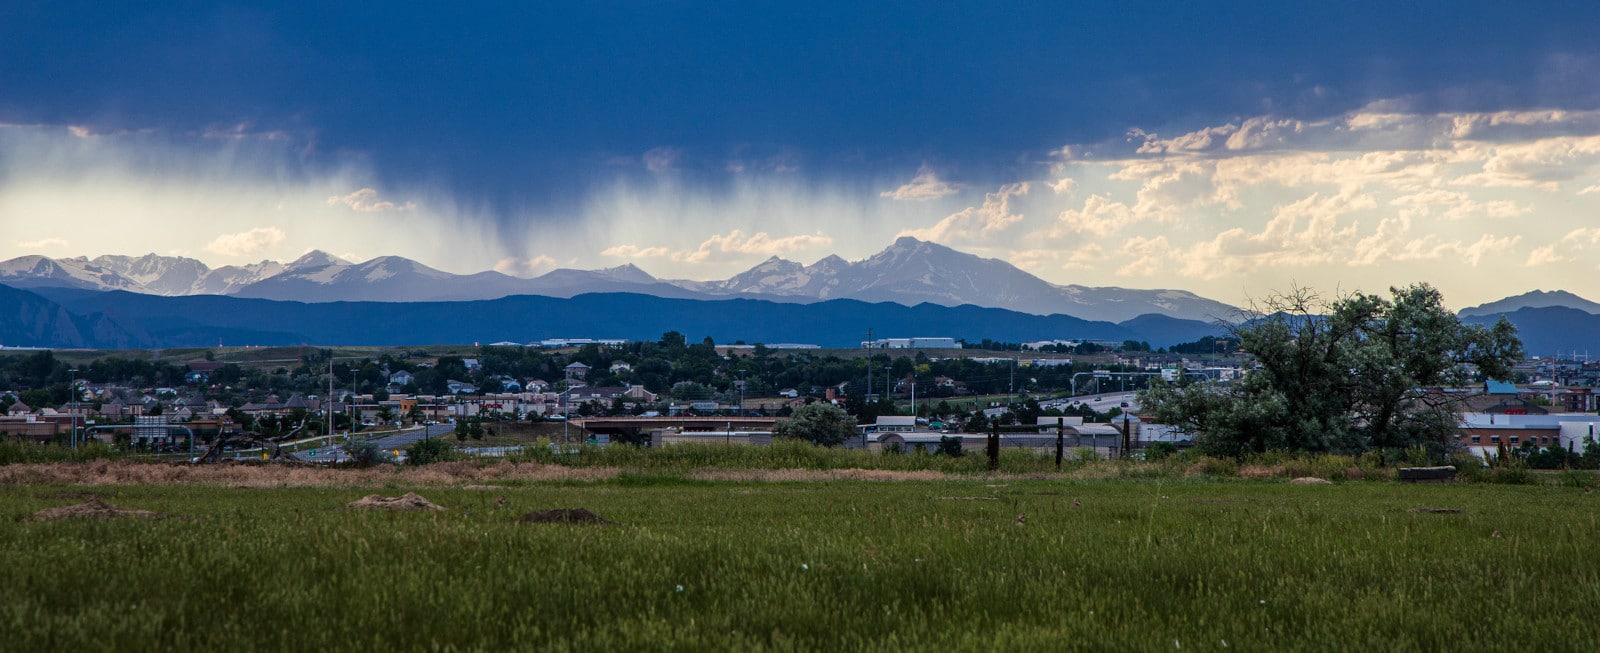 Image of the Front Range from the Hyland Ponds Open Space in Westminster, Colorado